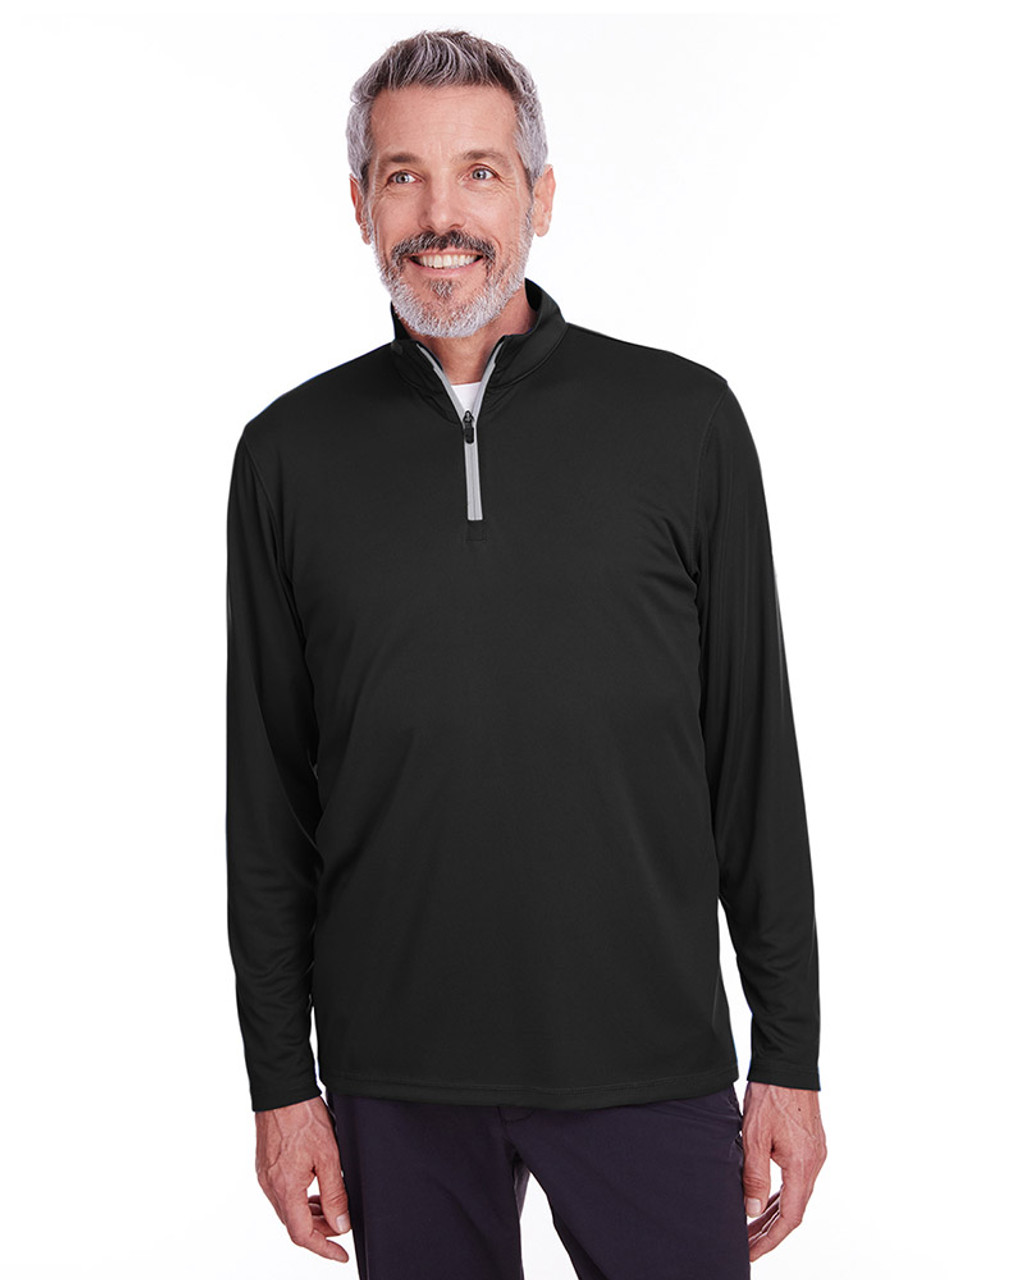 Puma Black - 596807 Puma Golf Men's Icon Quarter-Zip Shirt | Blankclothing.ca